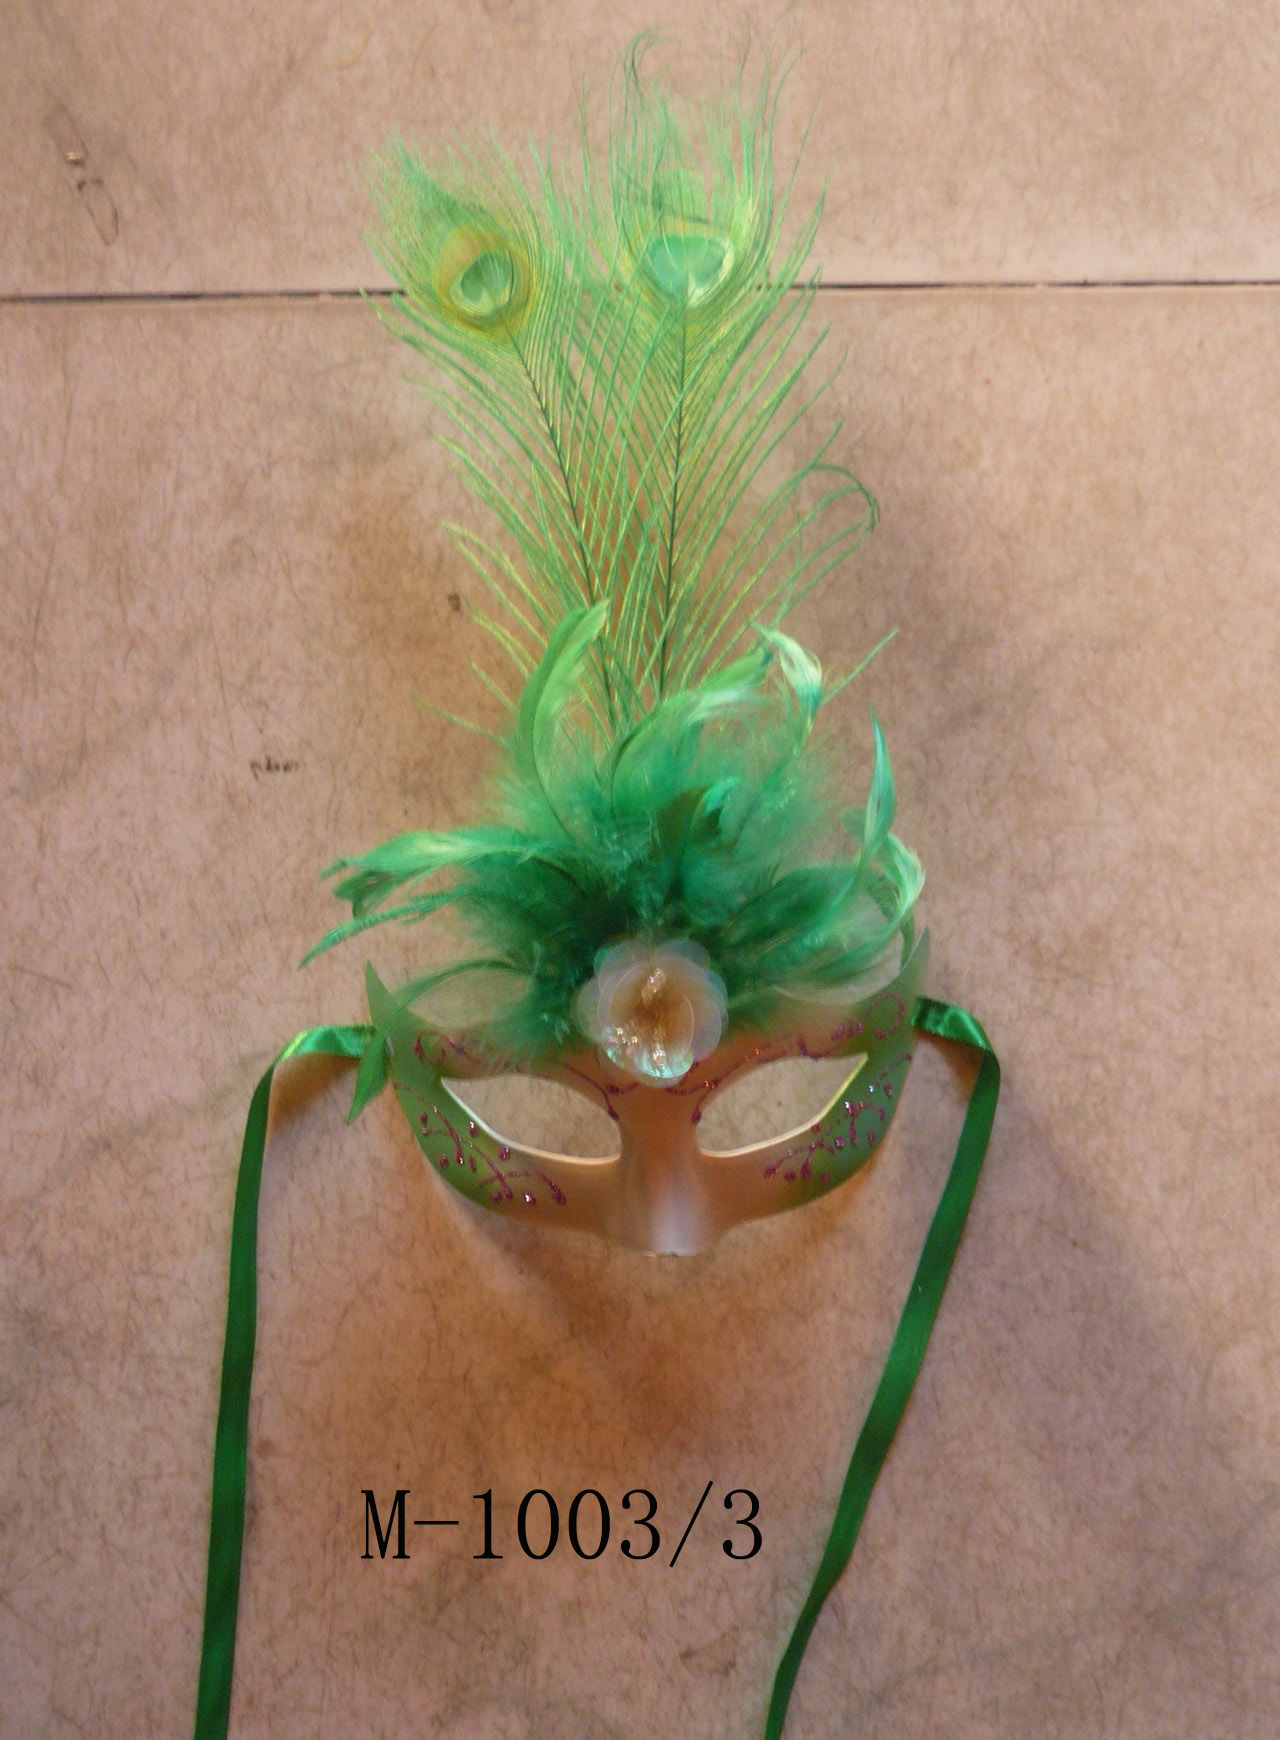 Cheap feather masks for sale - Made in China M-1003/3